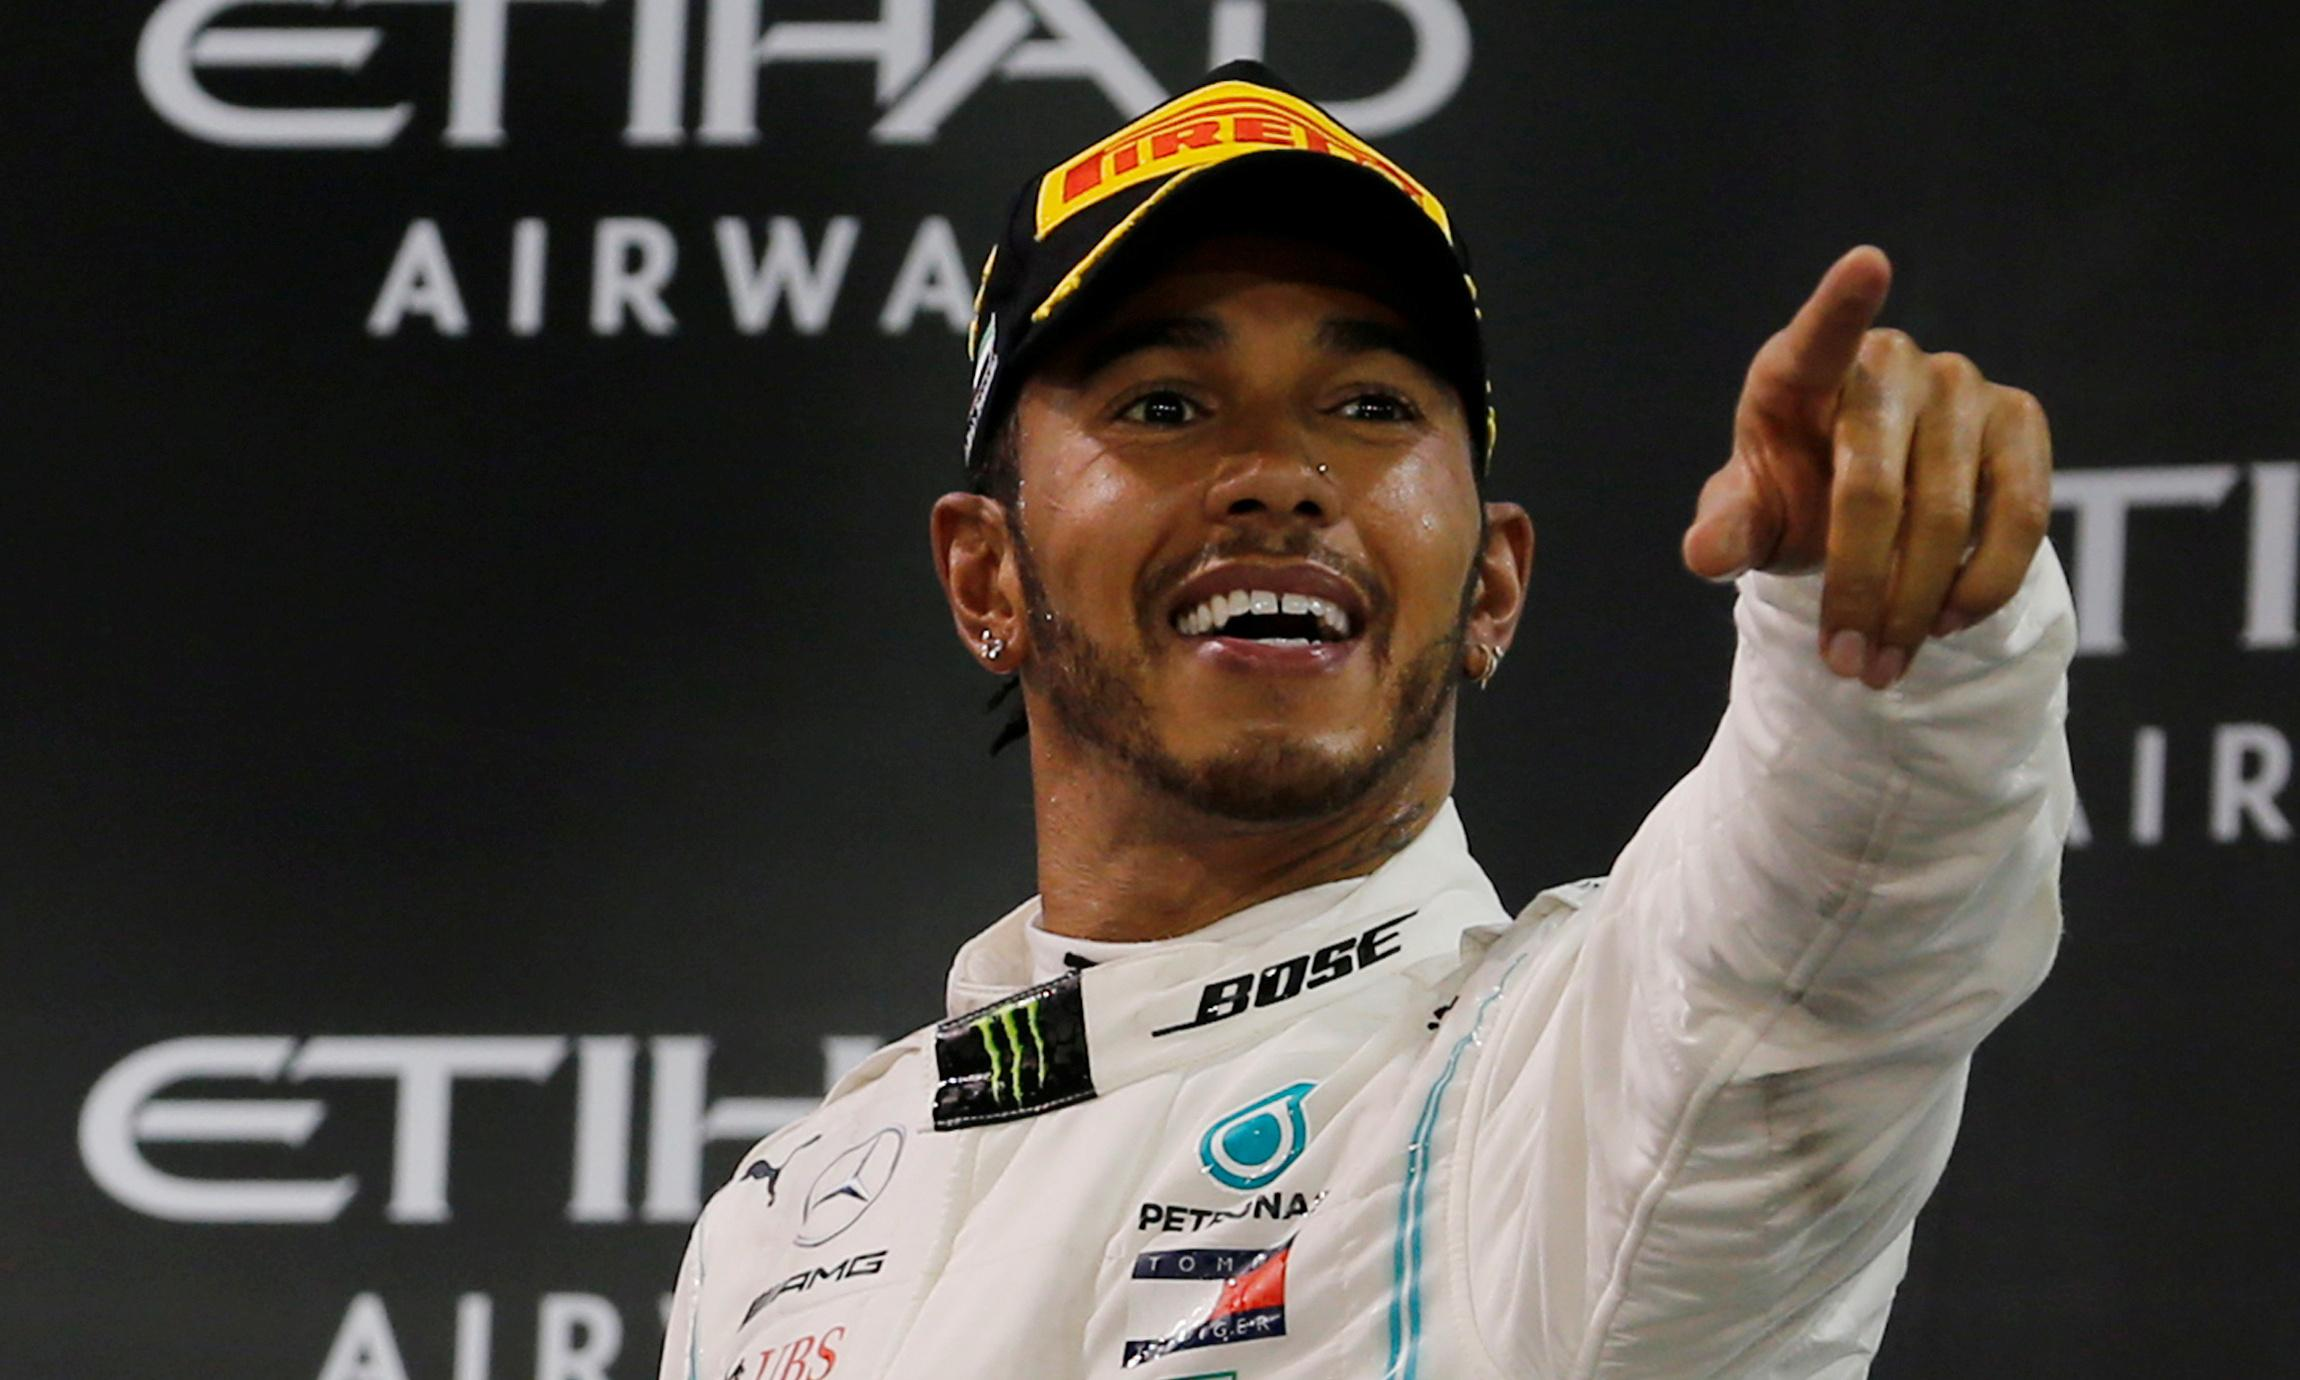 Prospective F1 drivers without wealthy parents have no chance